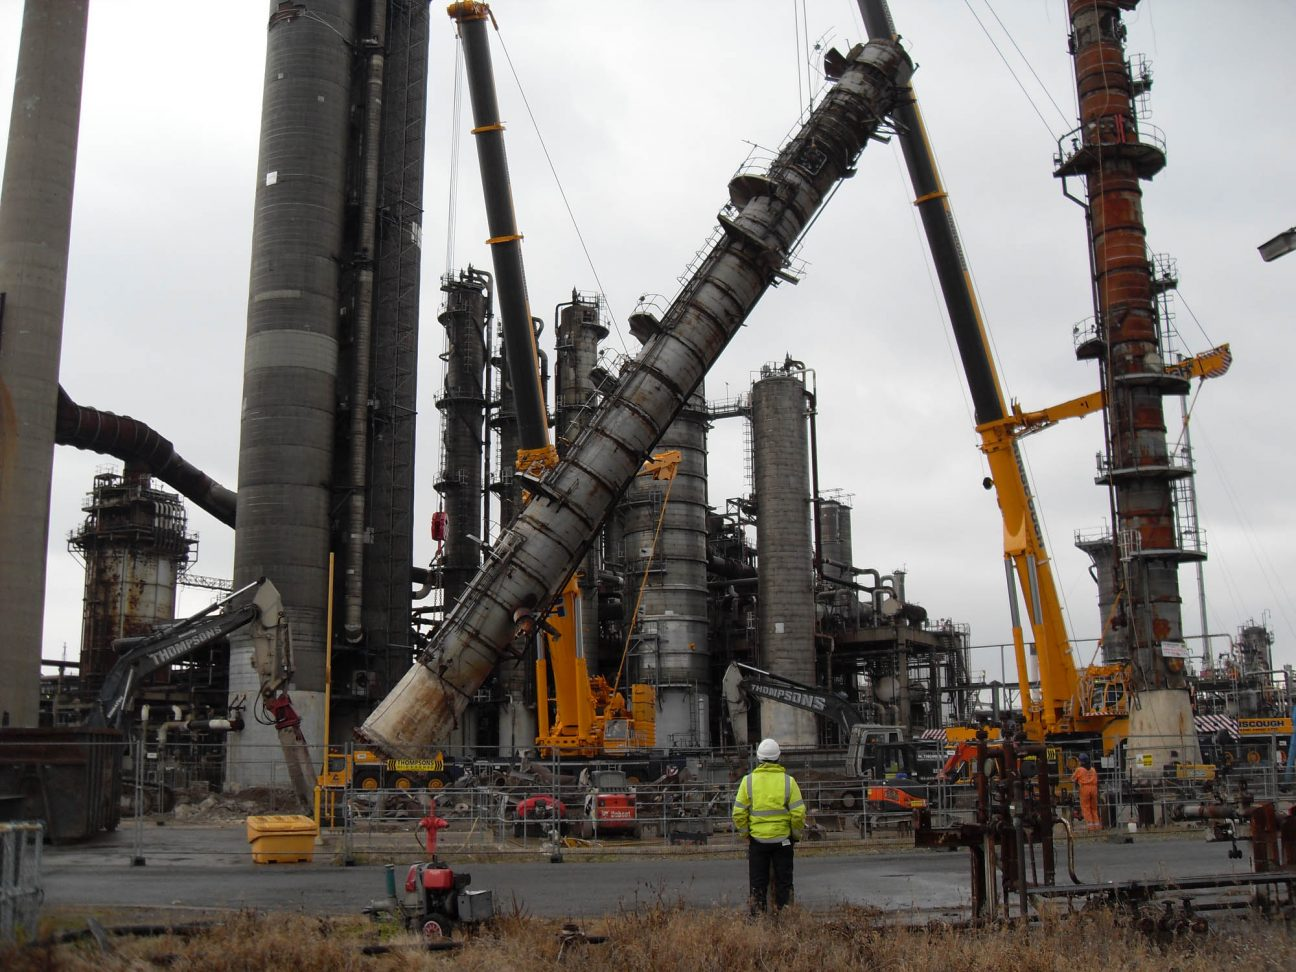 Plant Dismantling and Decommissioning